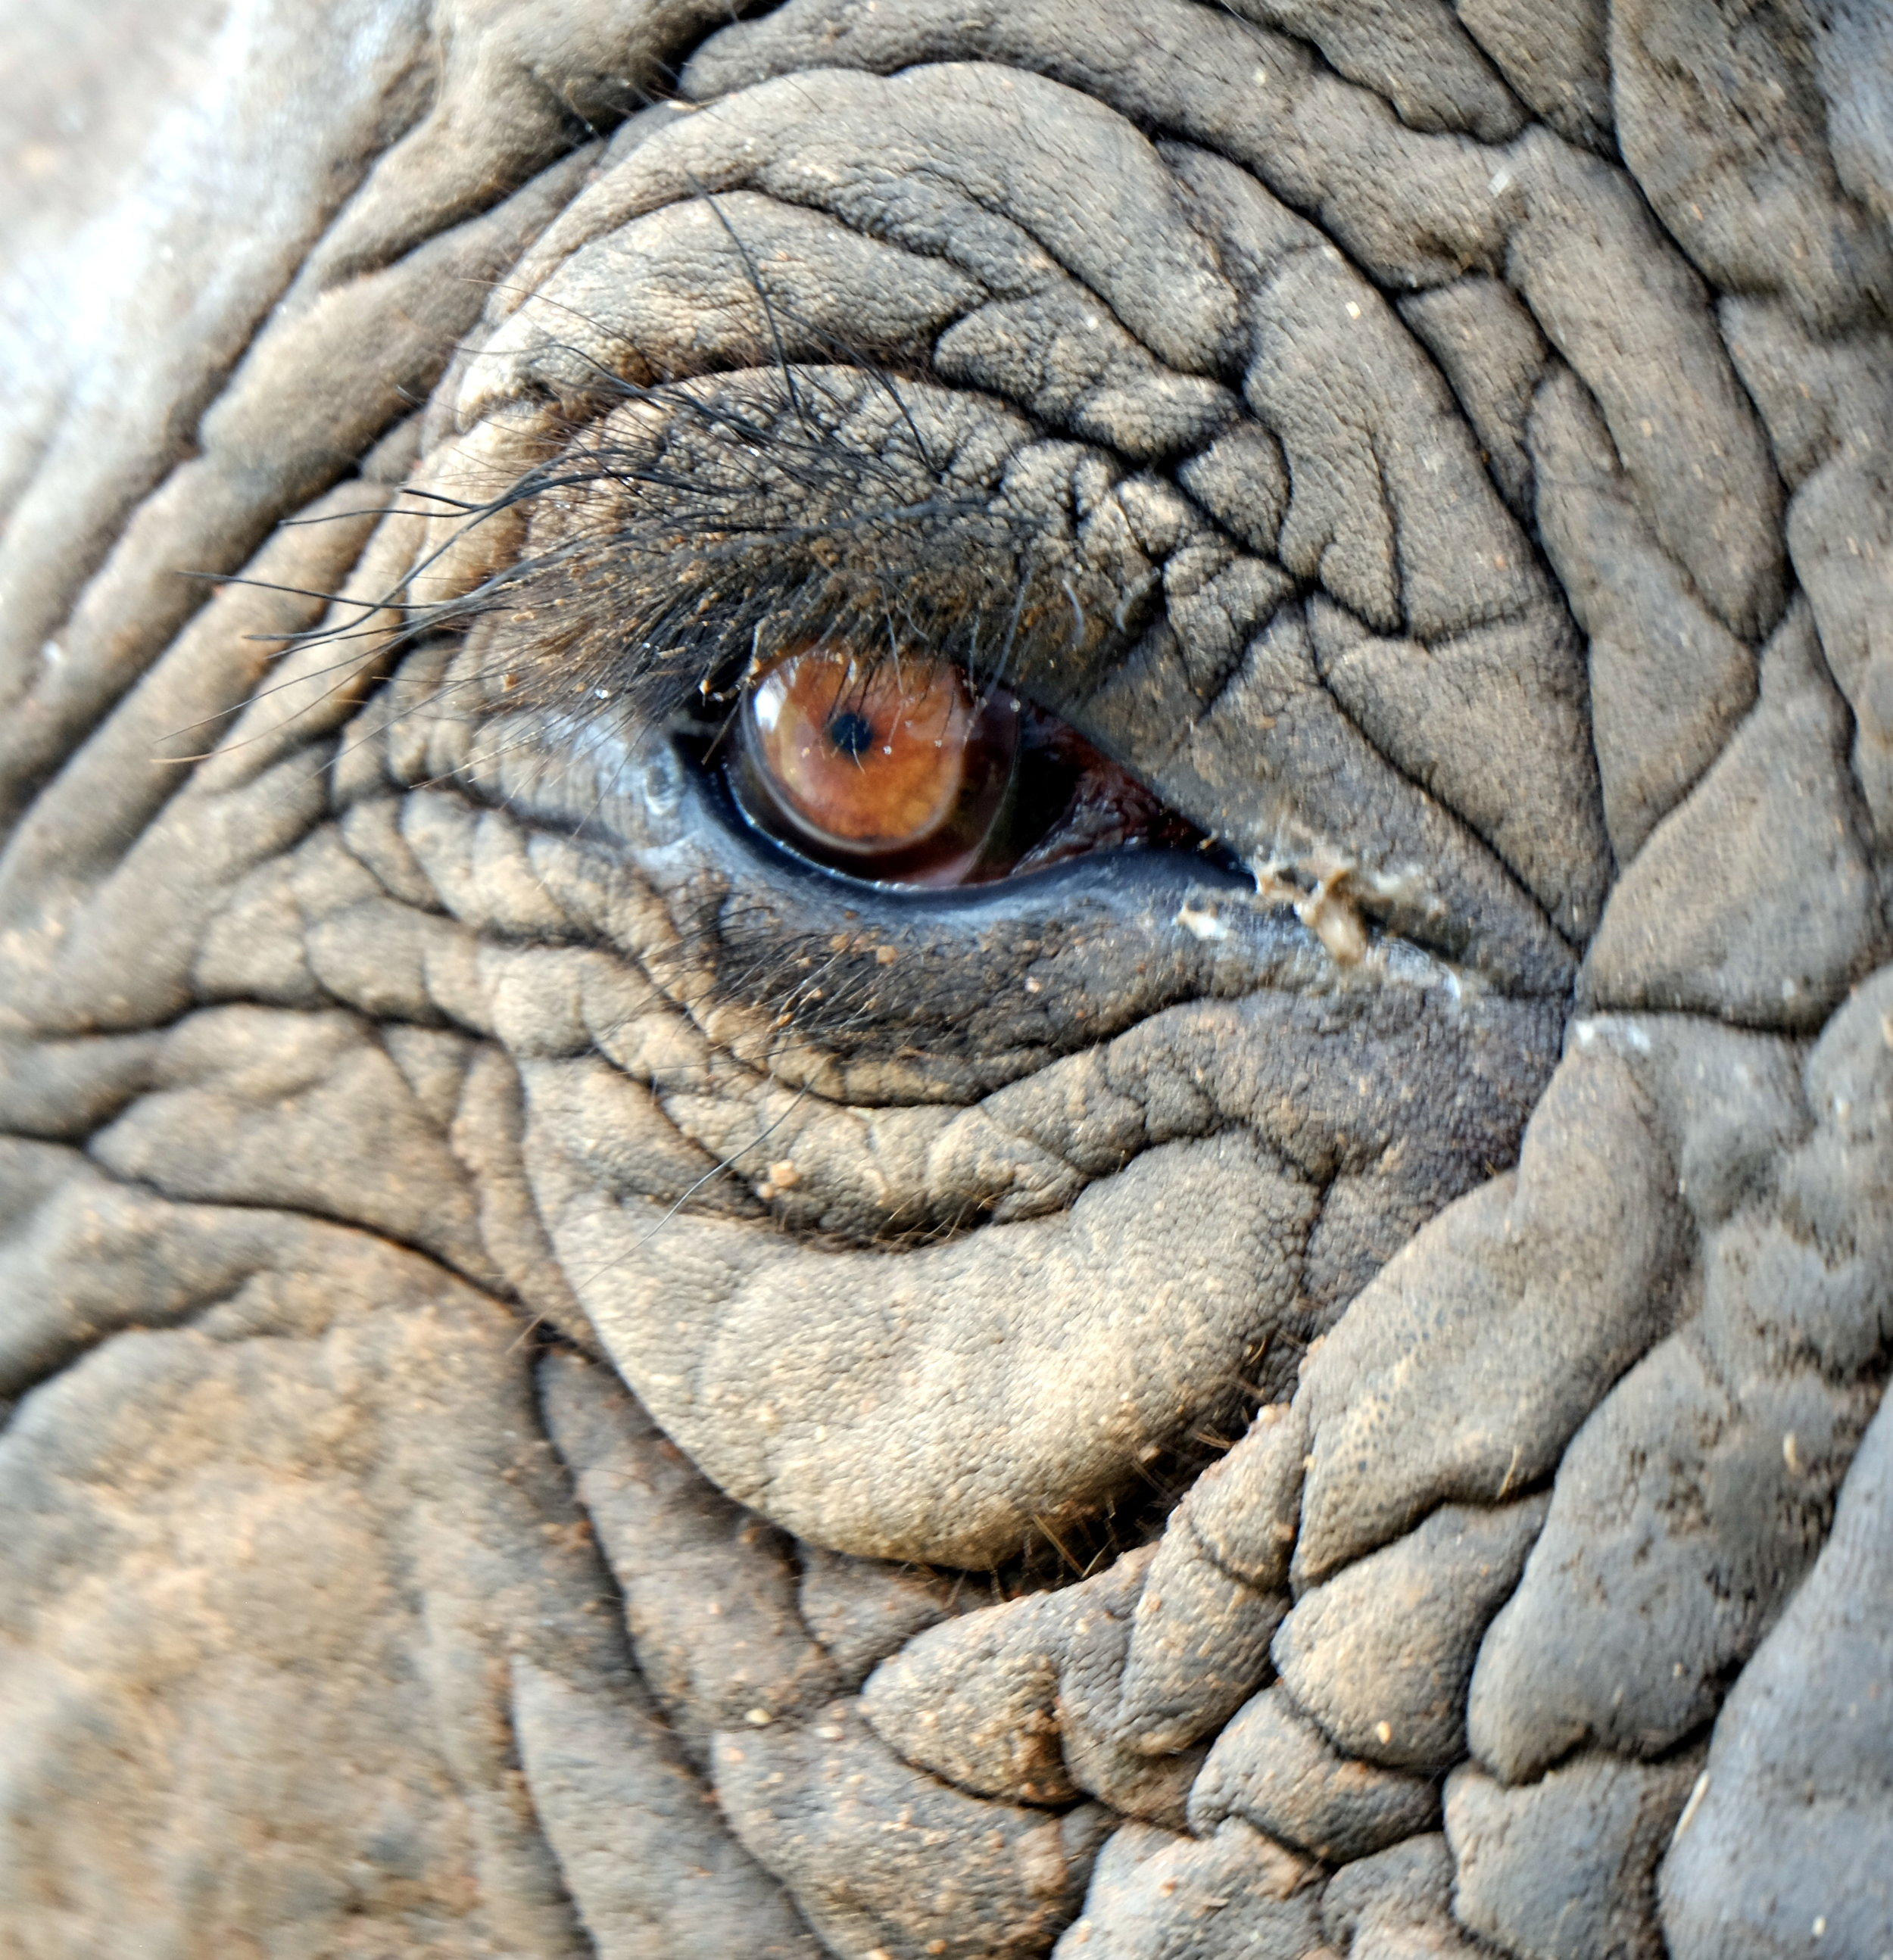 Elephants do not have tear ducts like most other mammels.